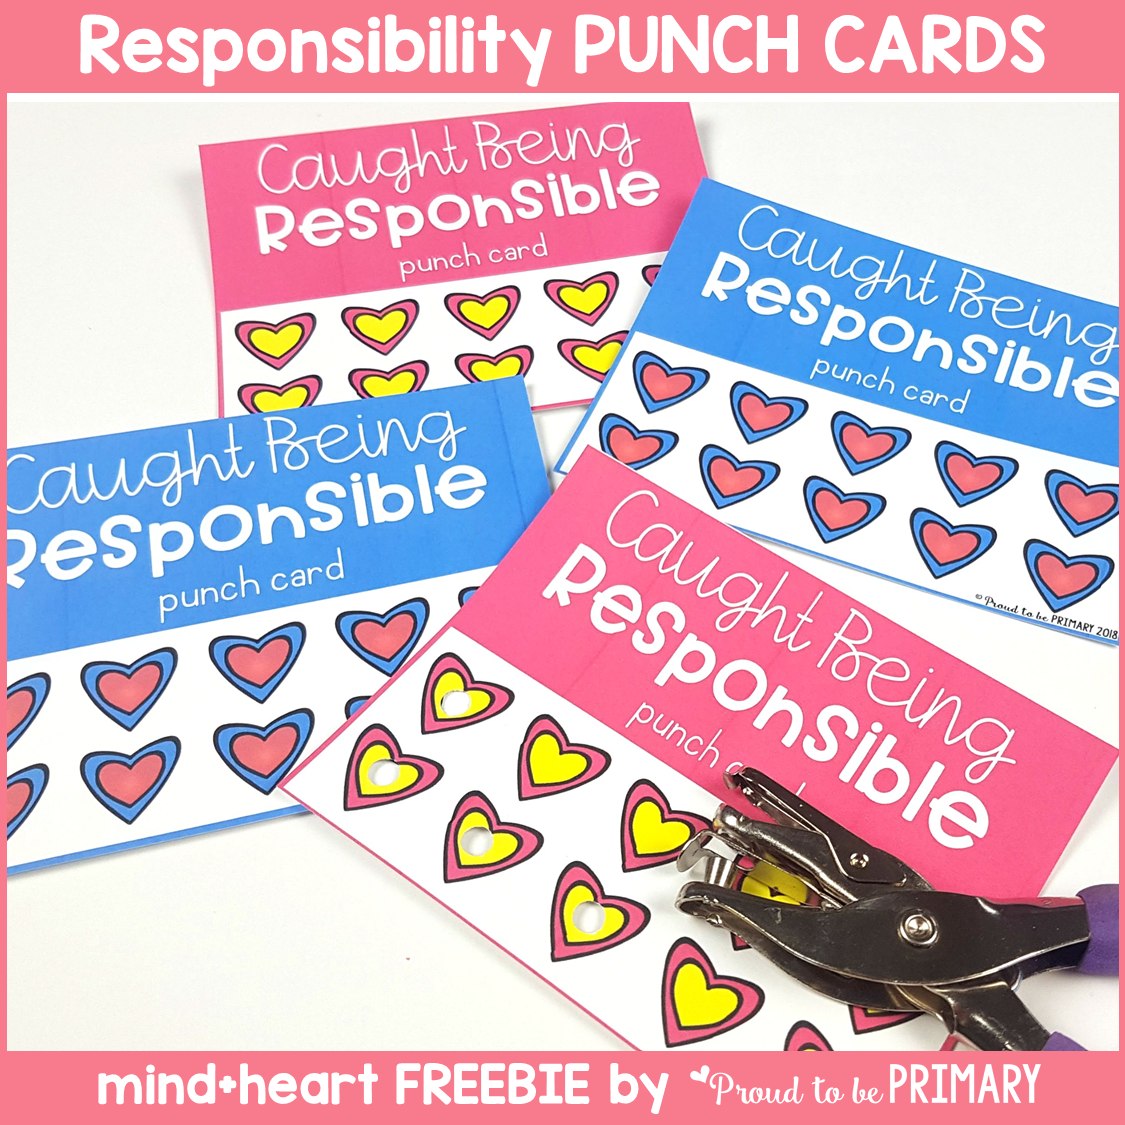 teaching responsibility - responsibility punch cards